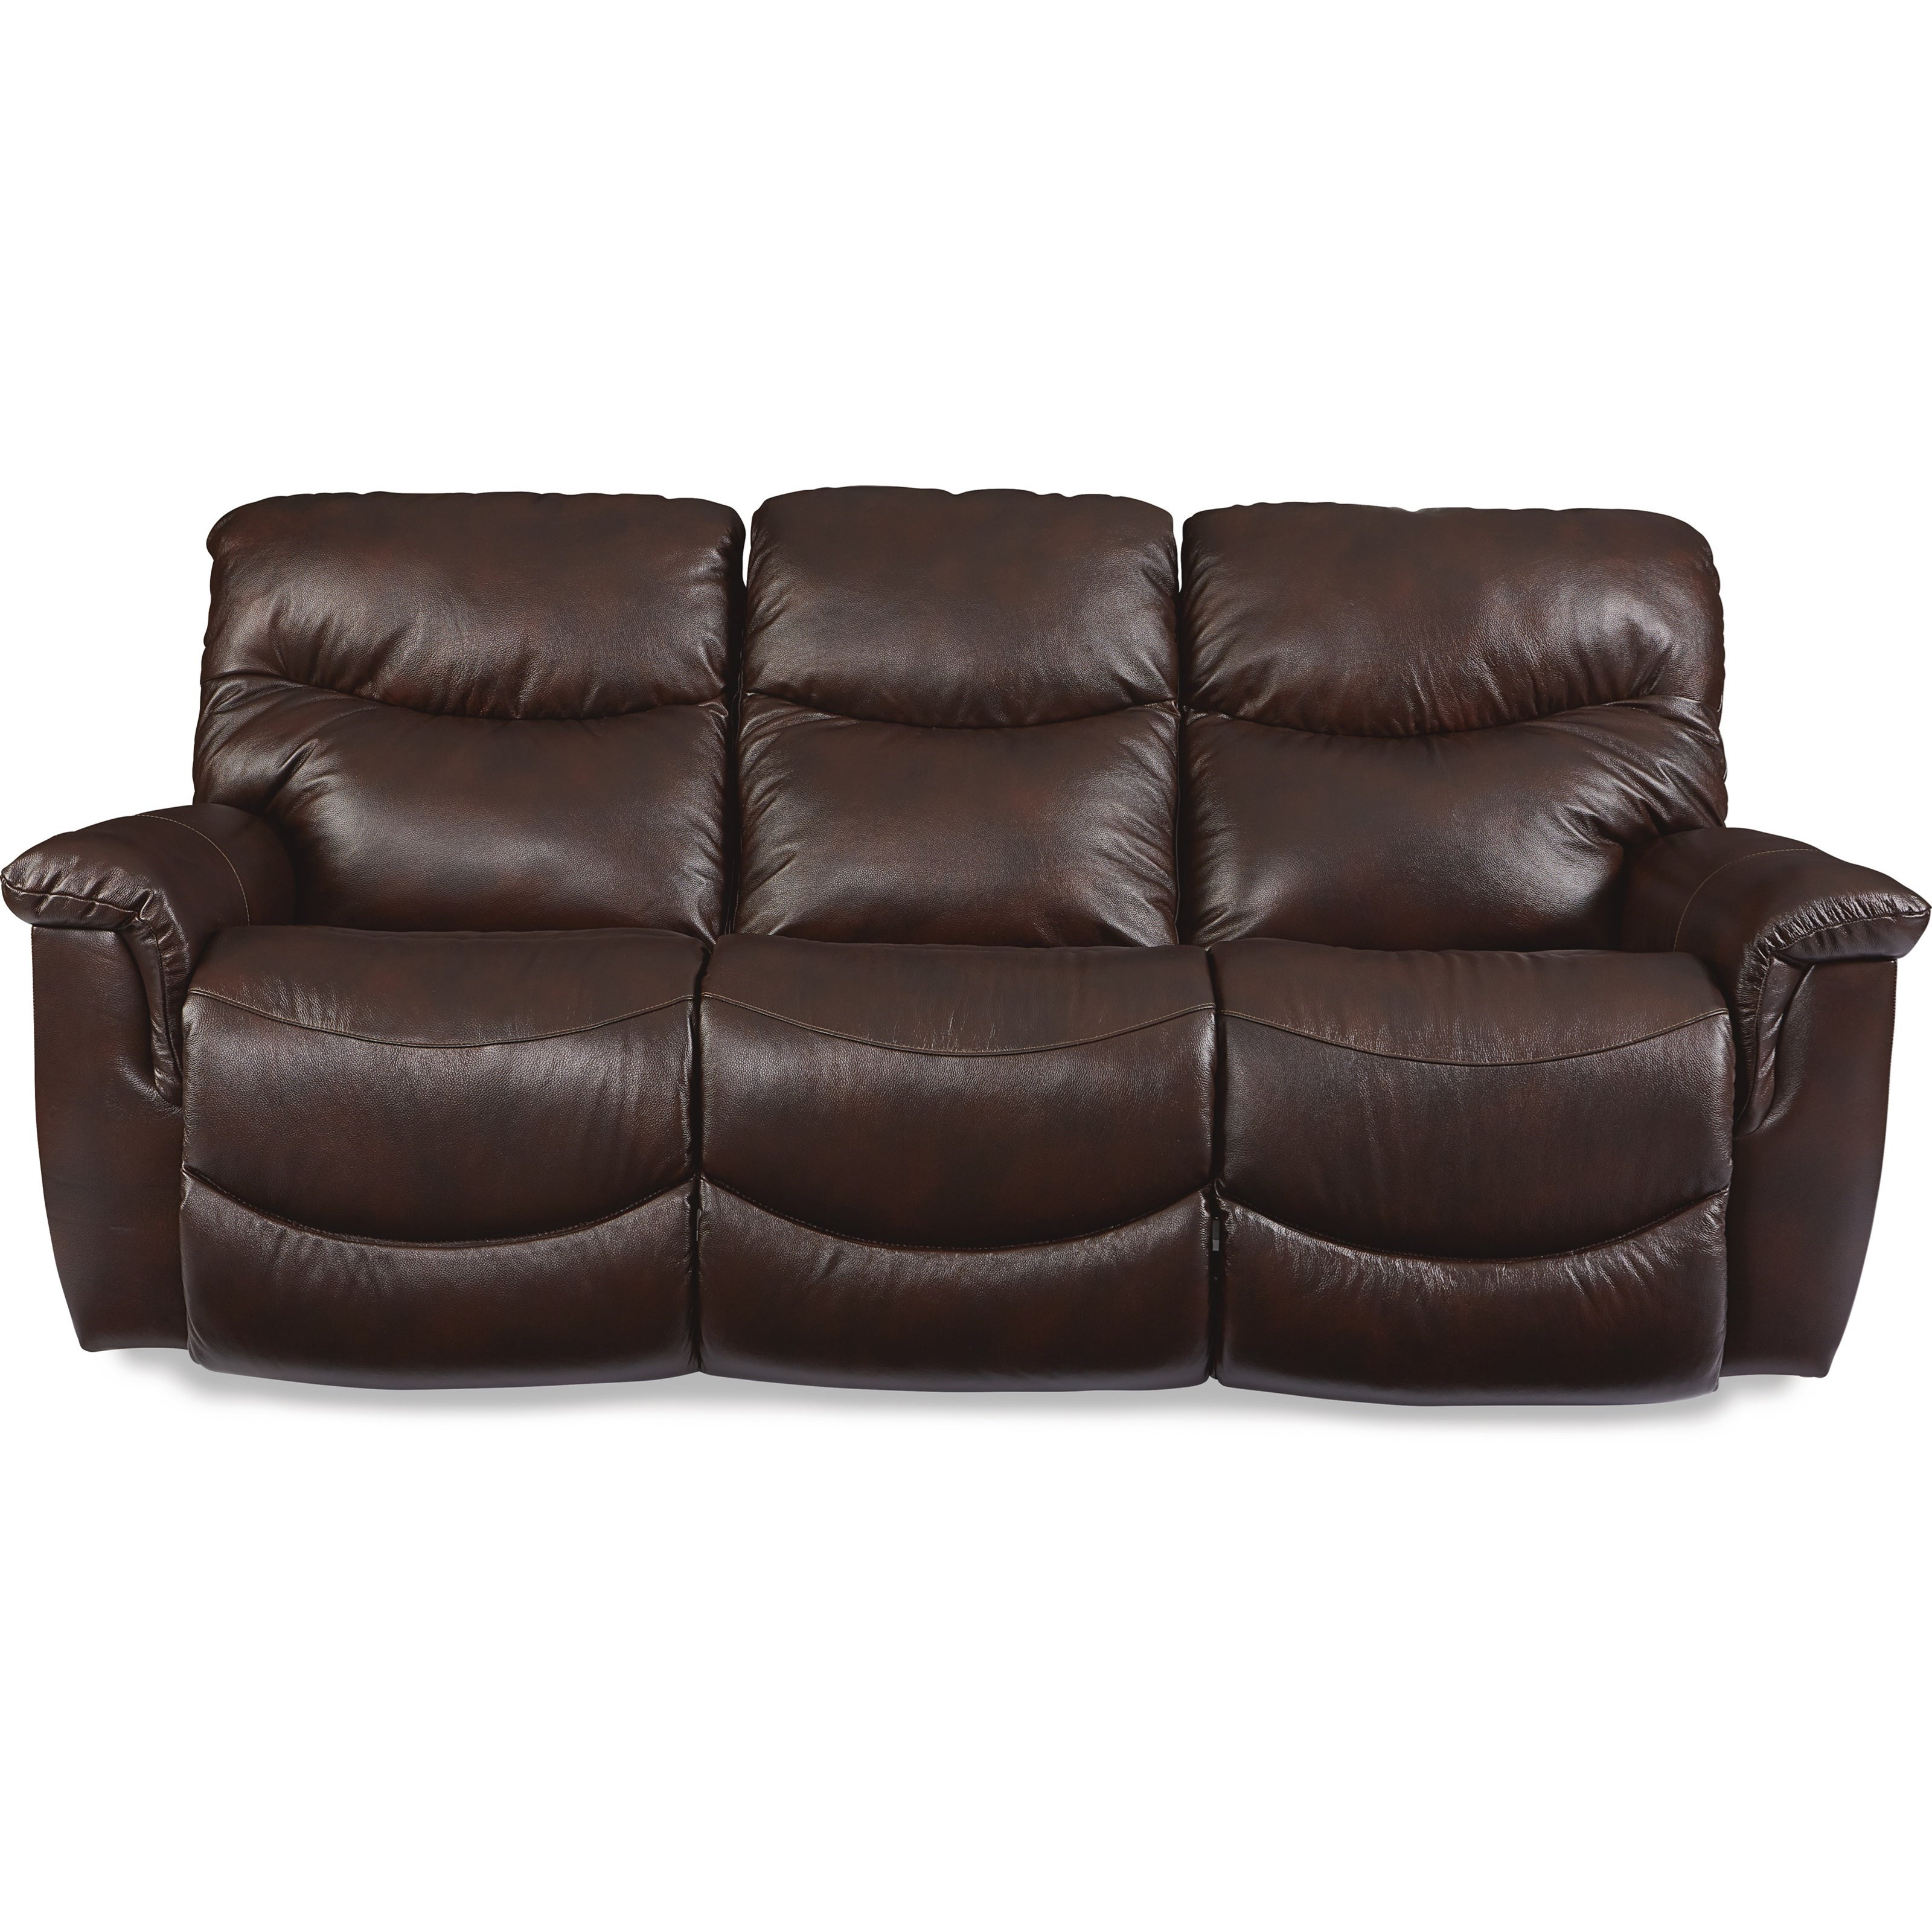 James Power Reclining Sofa by La-Z-Boy at Jordan's Home Furnishings